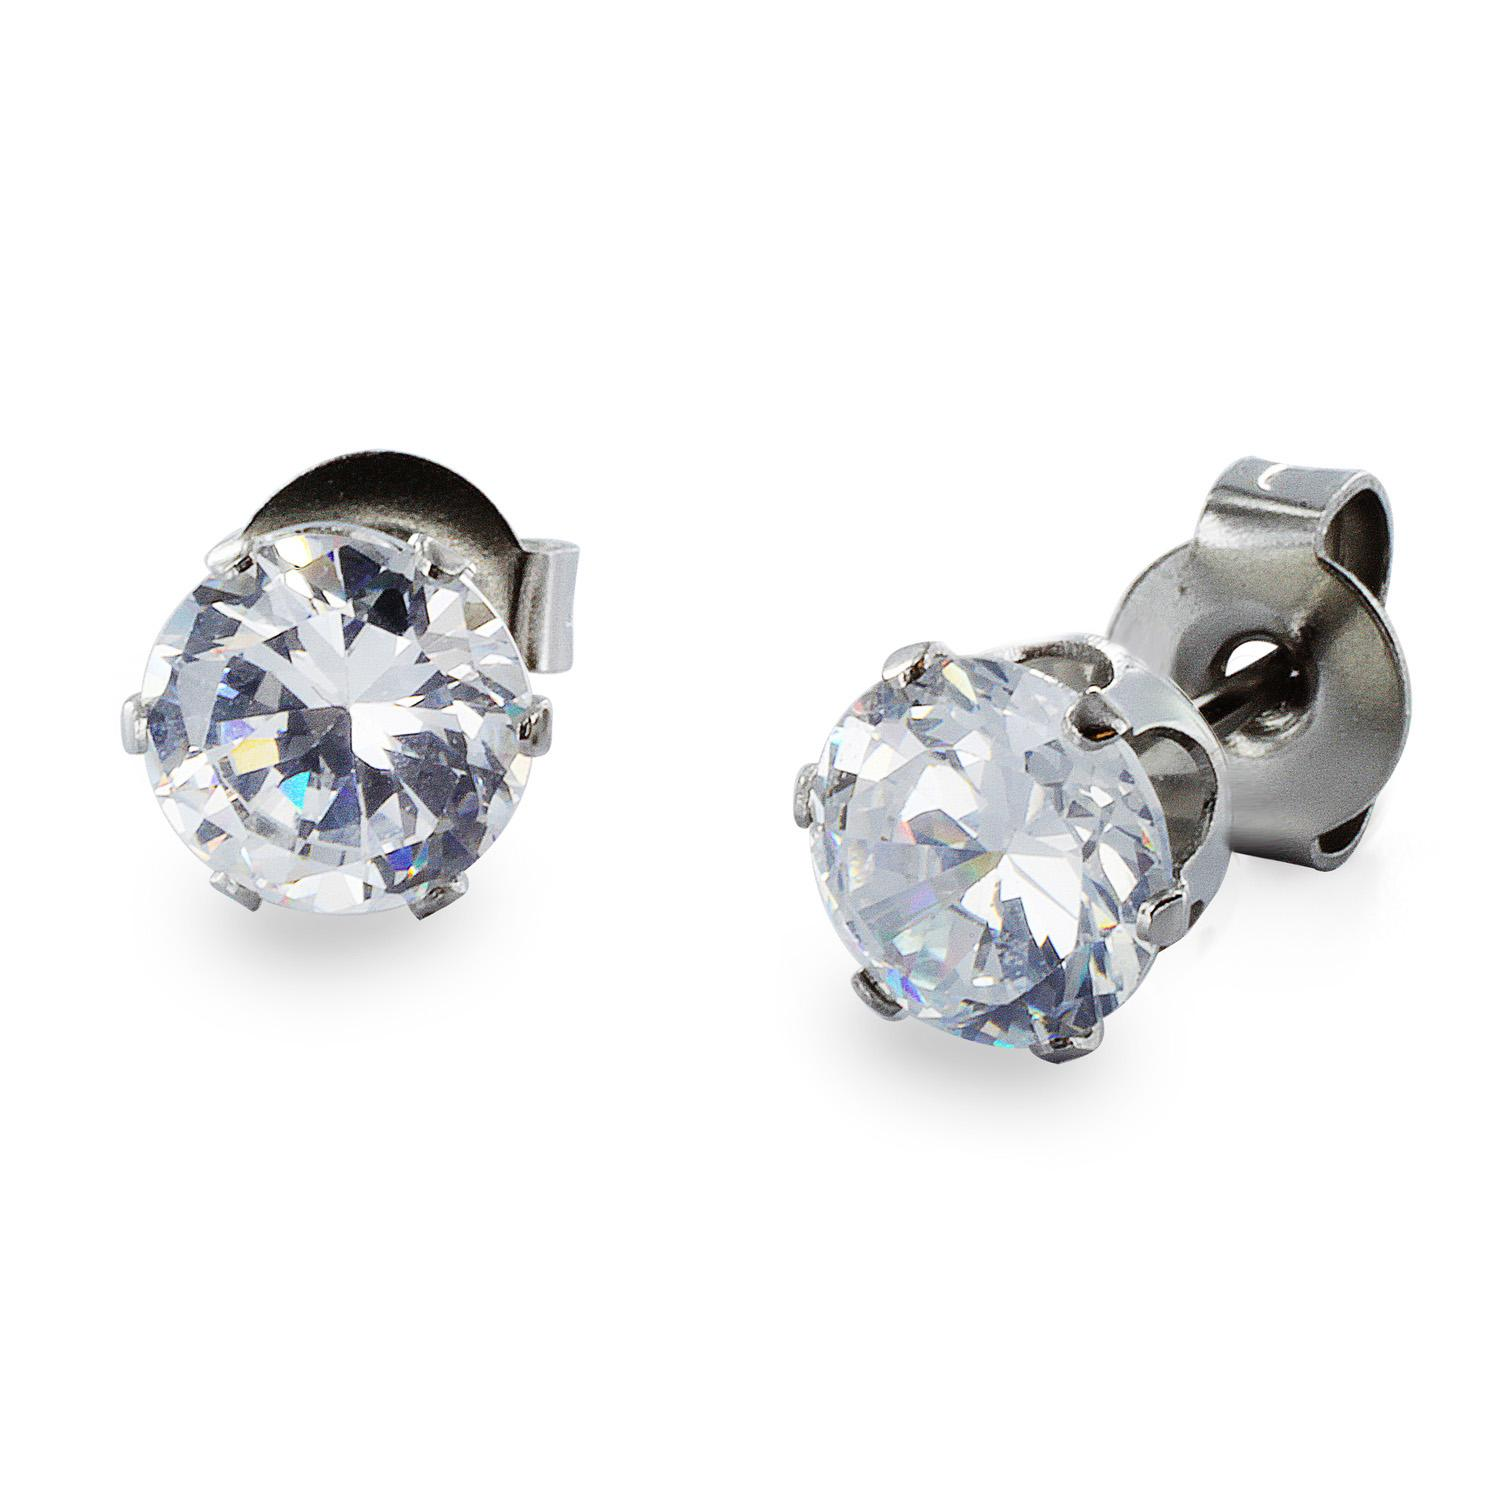 Stainless Steel Stud Earrings with Round Clear CZ - 4 mm